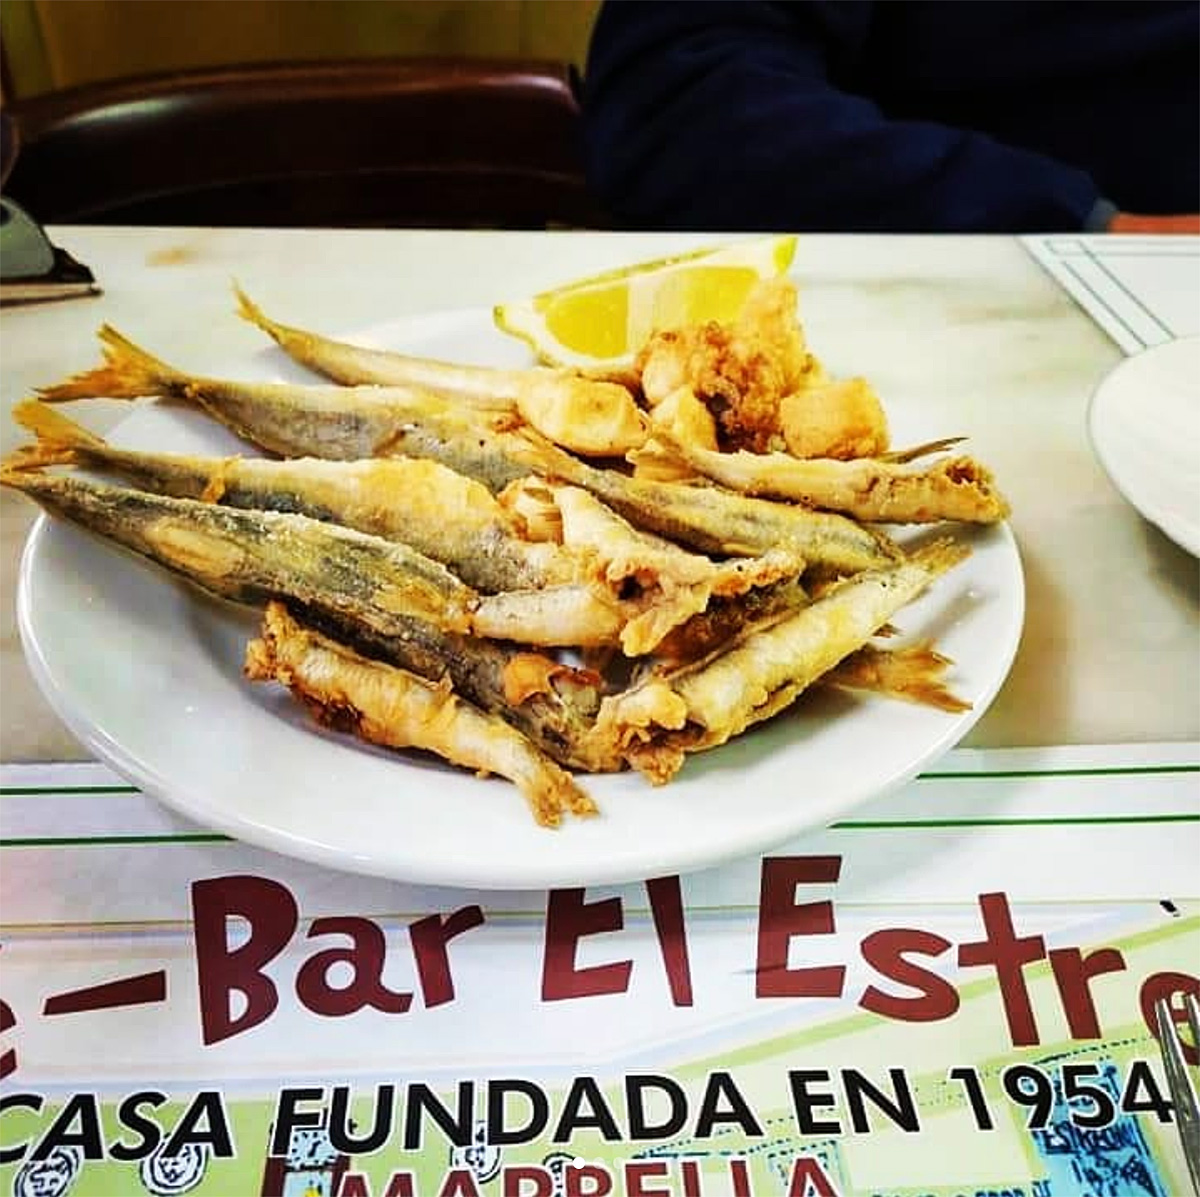 If you fancy tapas then Estrecho is the place to go